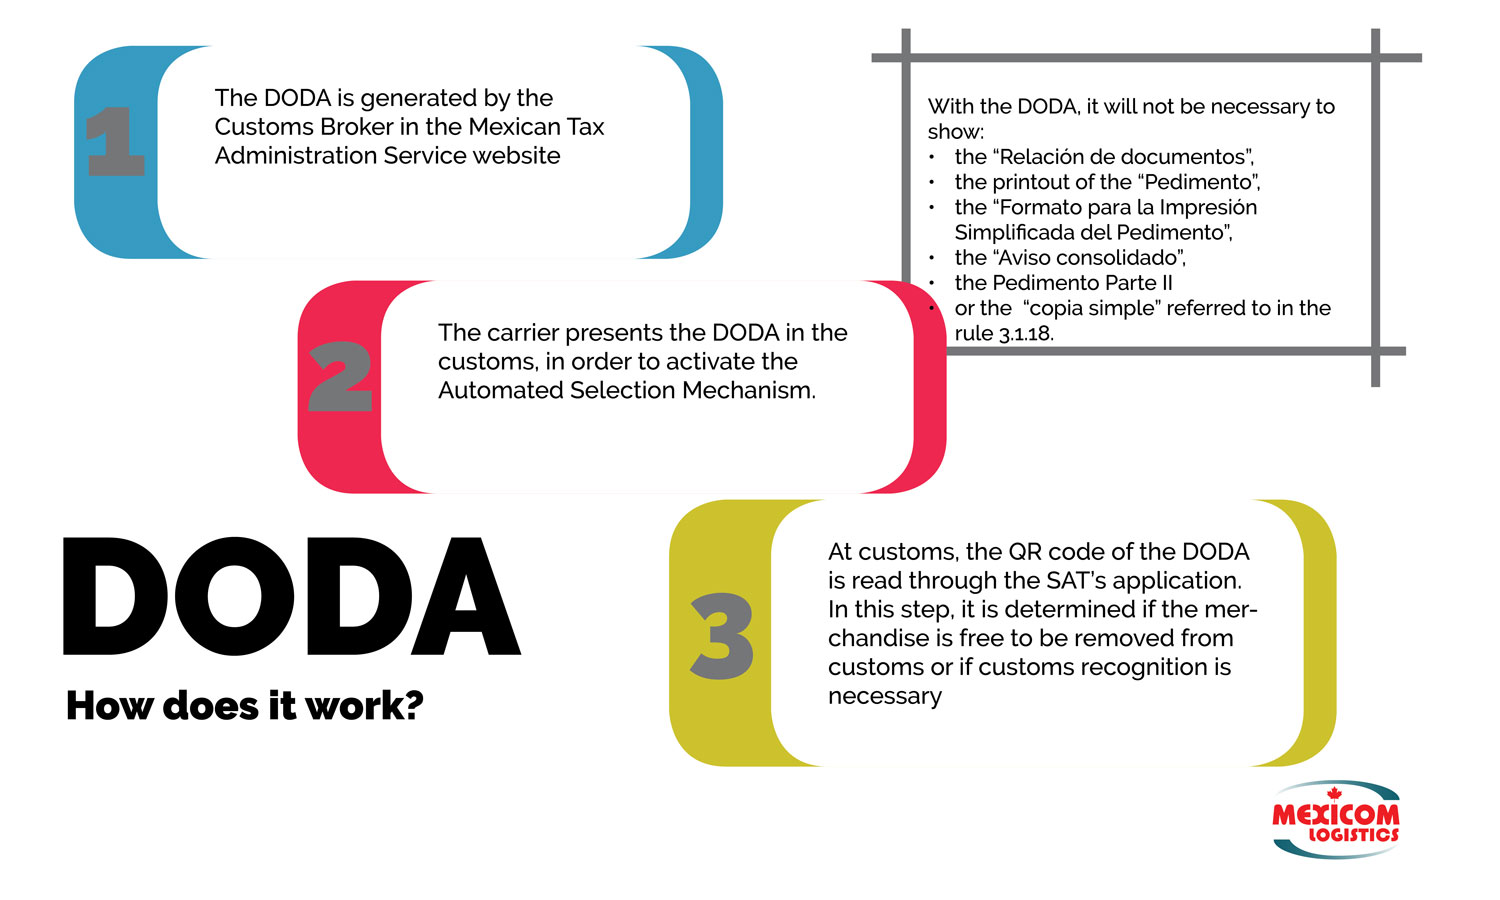 Brief explanation of how the DODA works